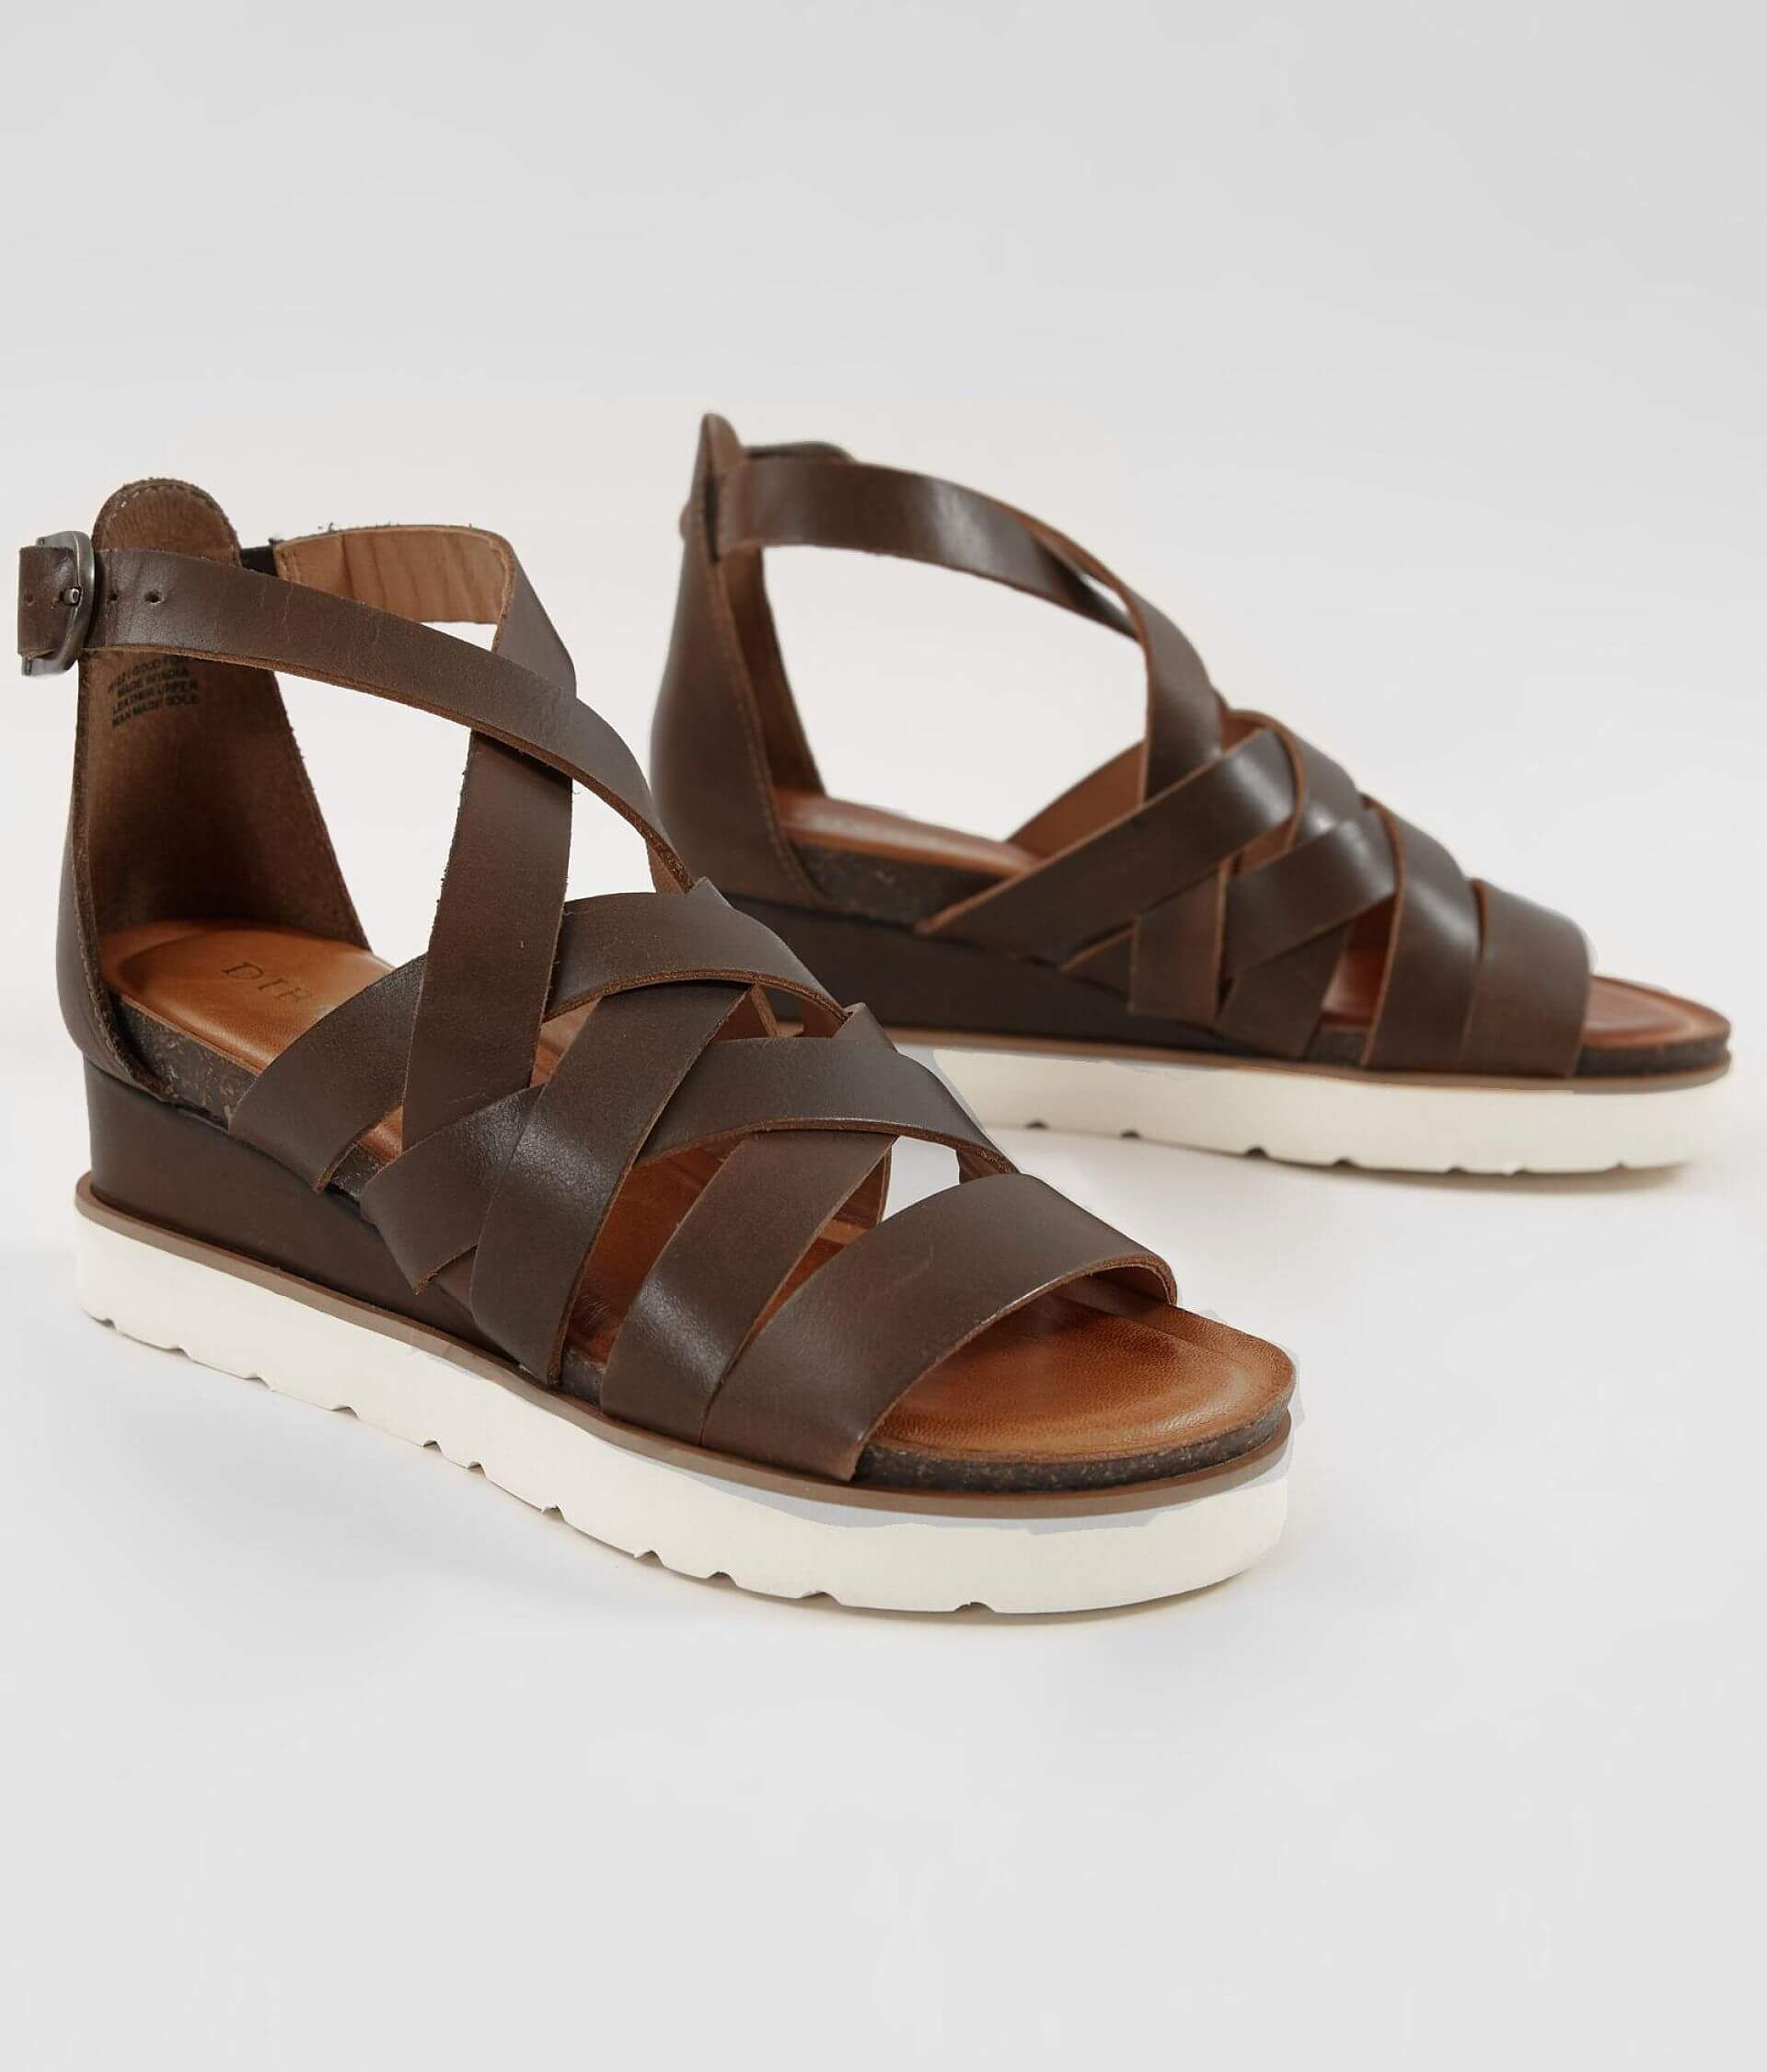 af26da7ed Diba True Good For Me Leather Sandal - Women s Shoes in Brown